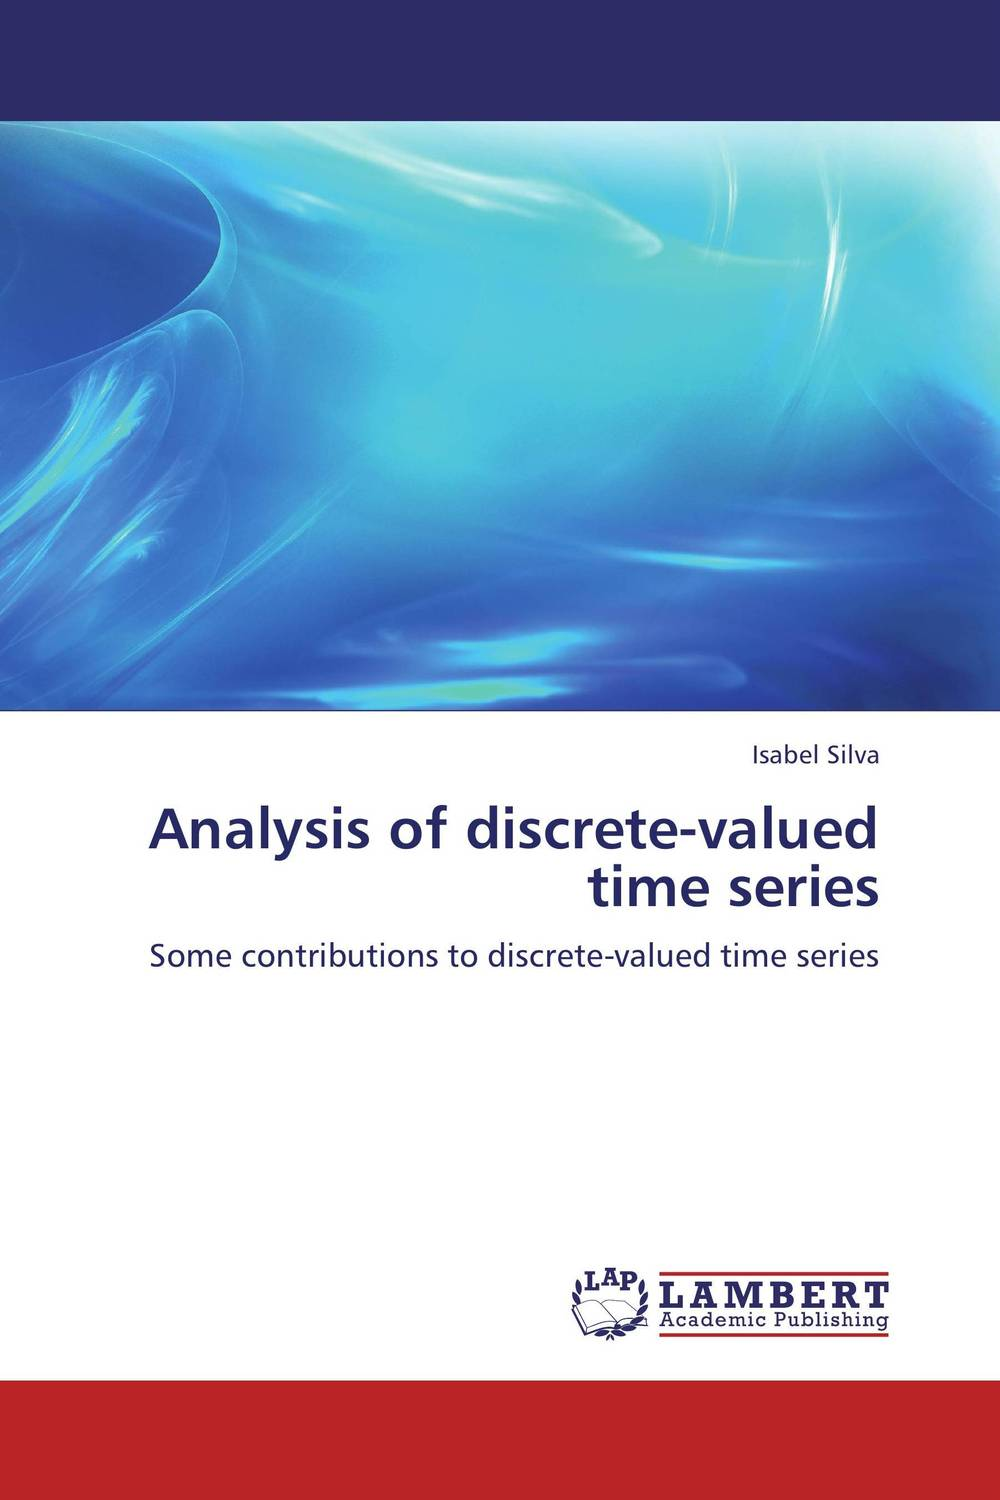 Analysis of discrete-valued time series mcfadden structural analysis of discrete data w ith econometric applications